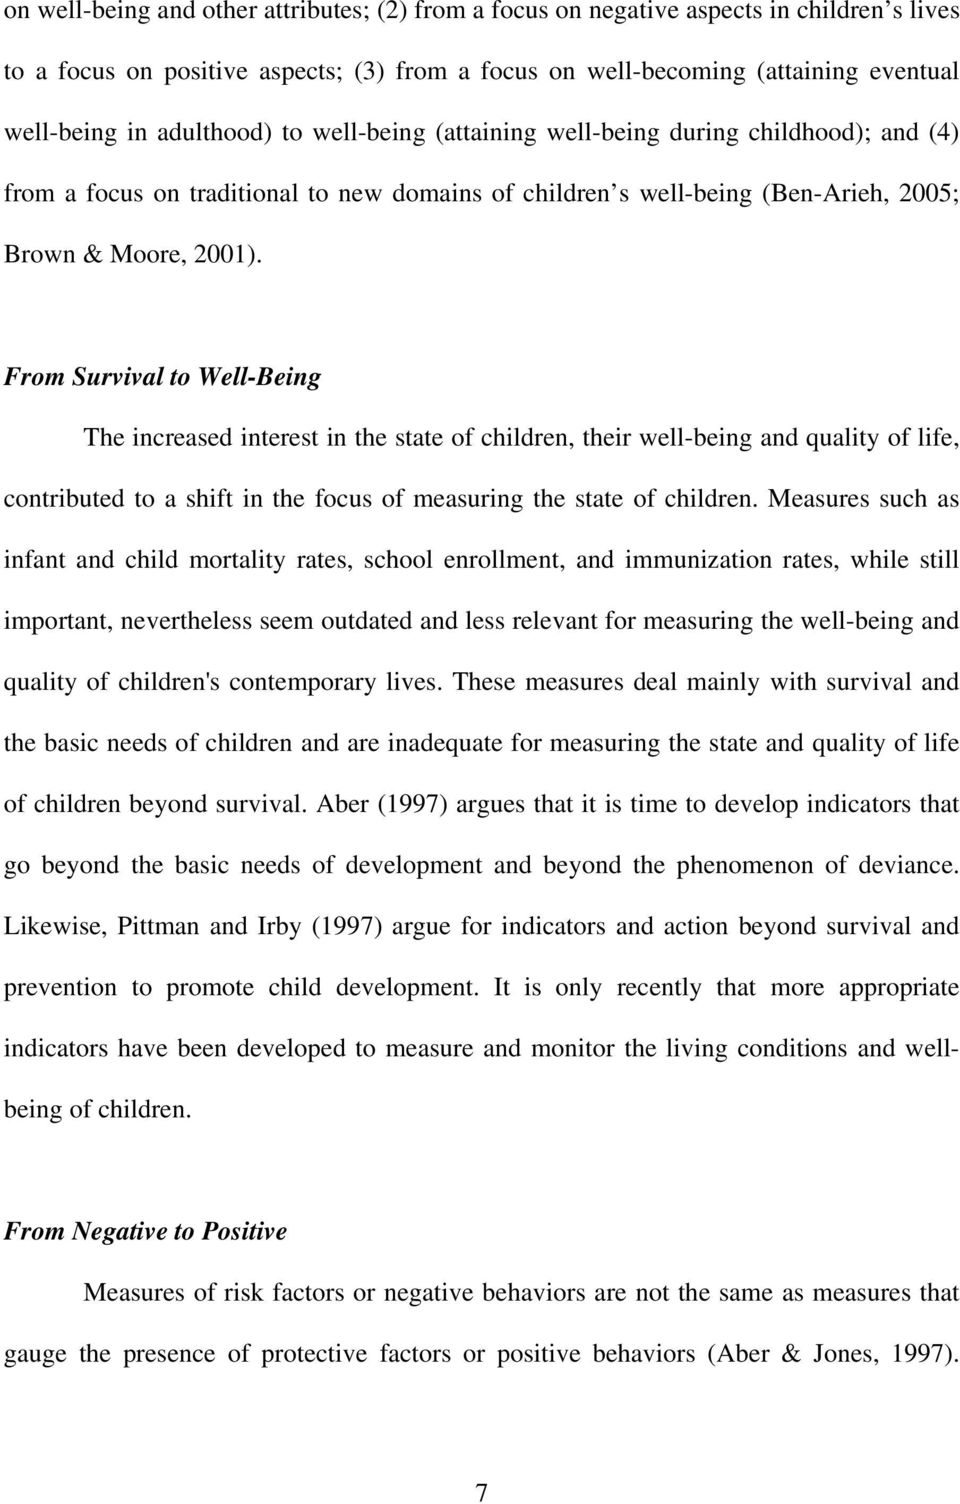 From Survival to Well-Being The increased interest in the state of children, their well-being and quality of life, contributed to a shift in the focus of measuring the state of children.